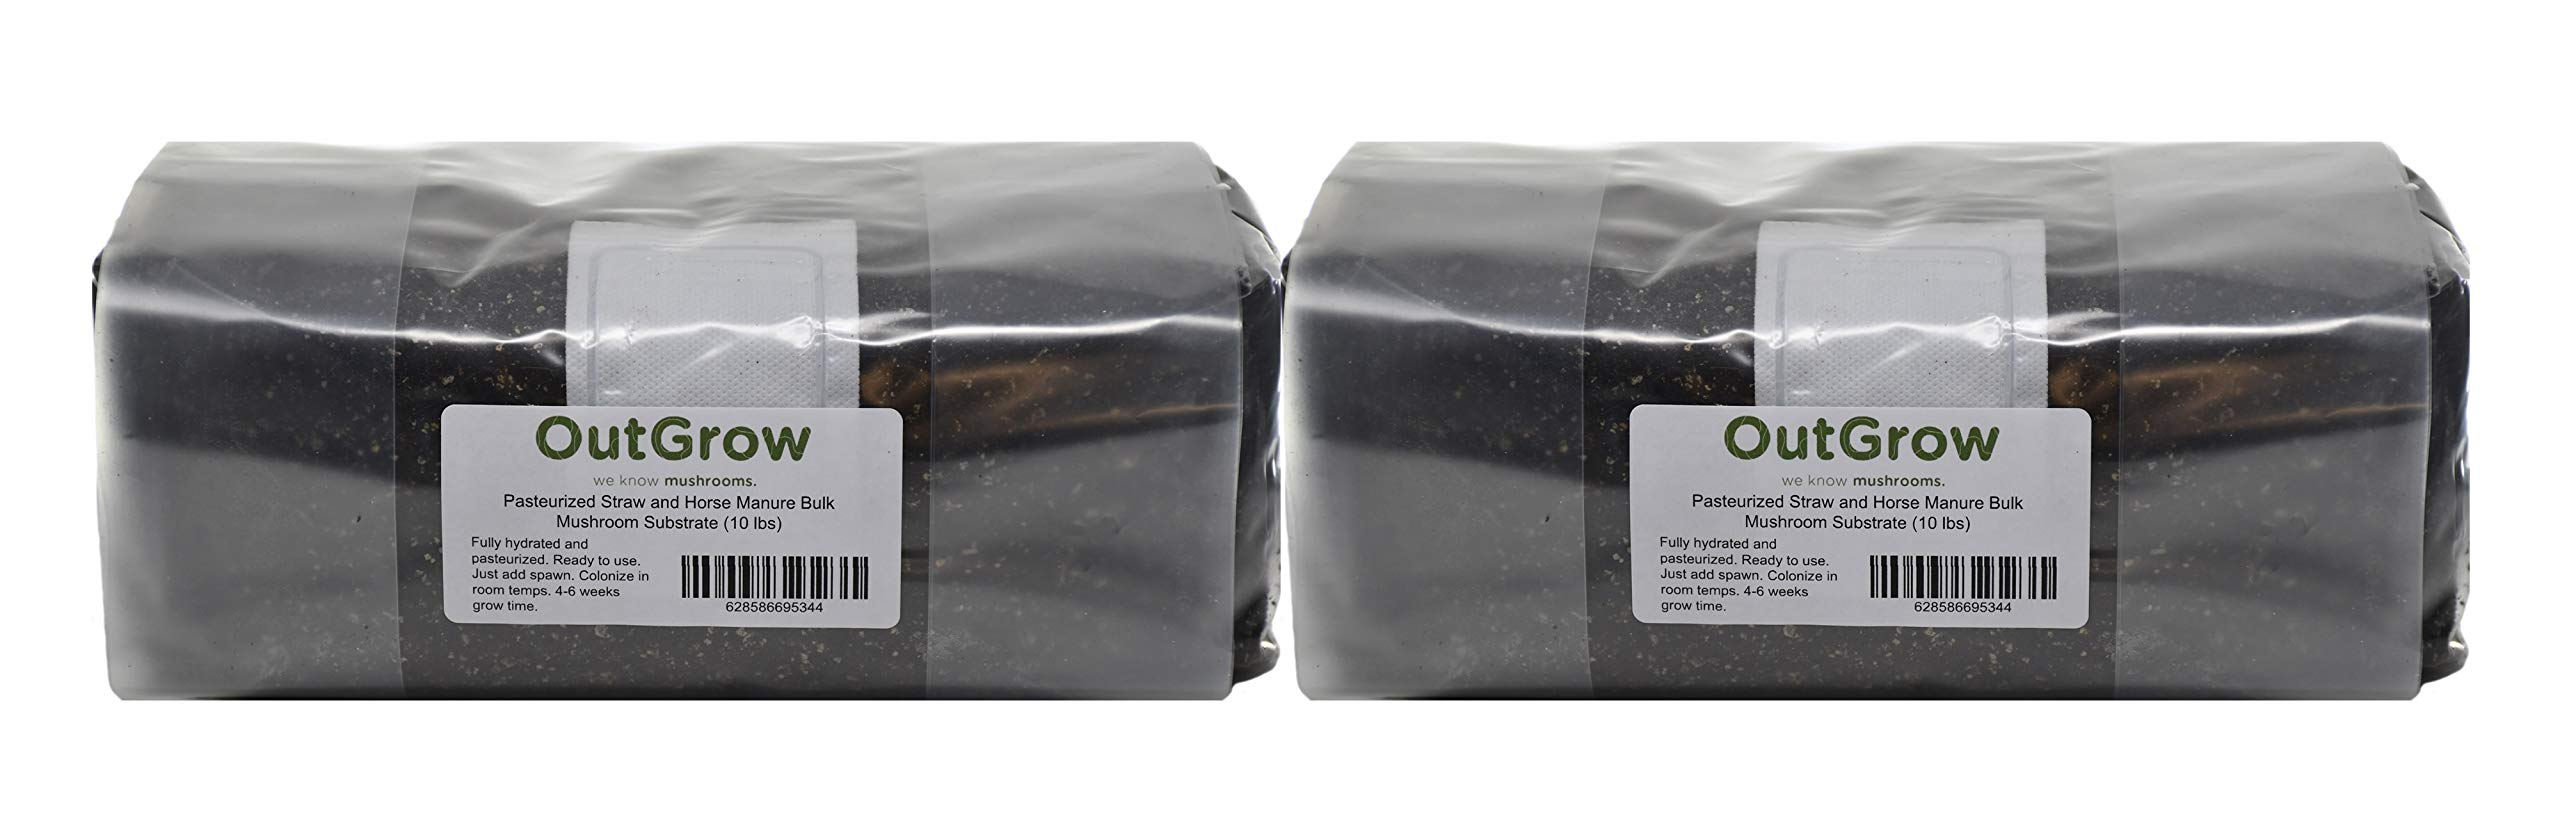 Pasteurized 50/50 Straw and Horse Manure Bulk Mushroom Substrate (10 lbs)